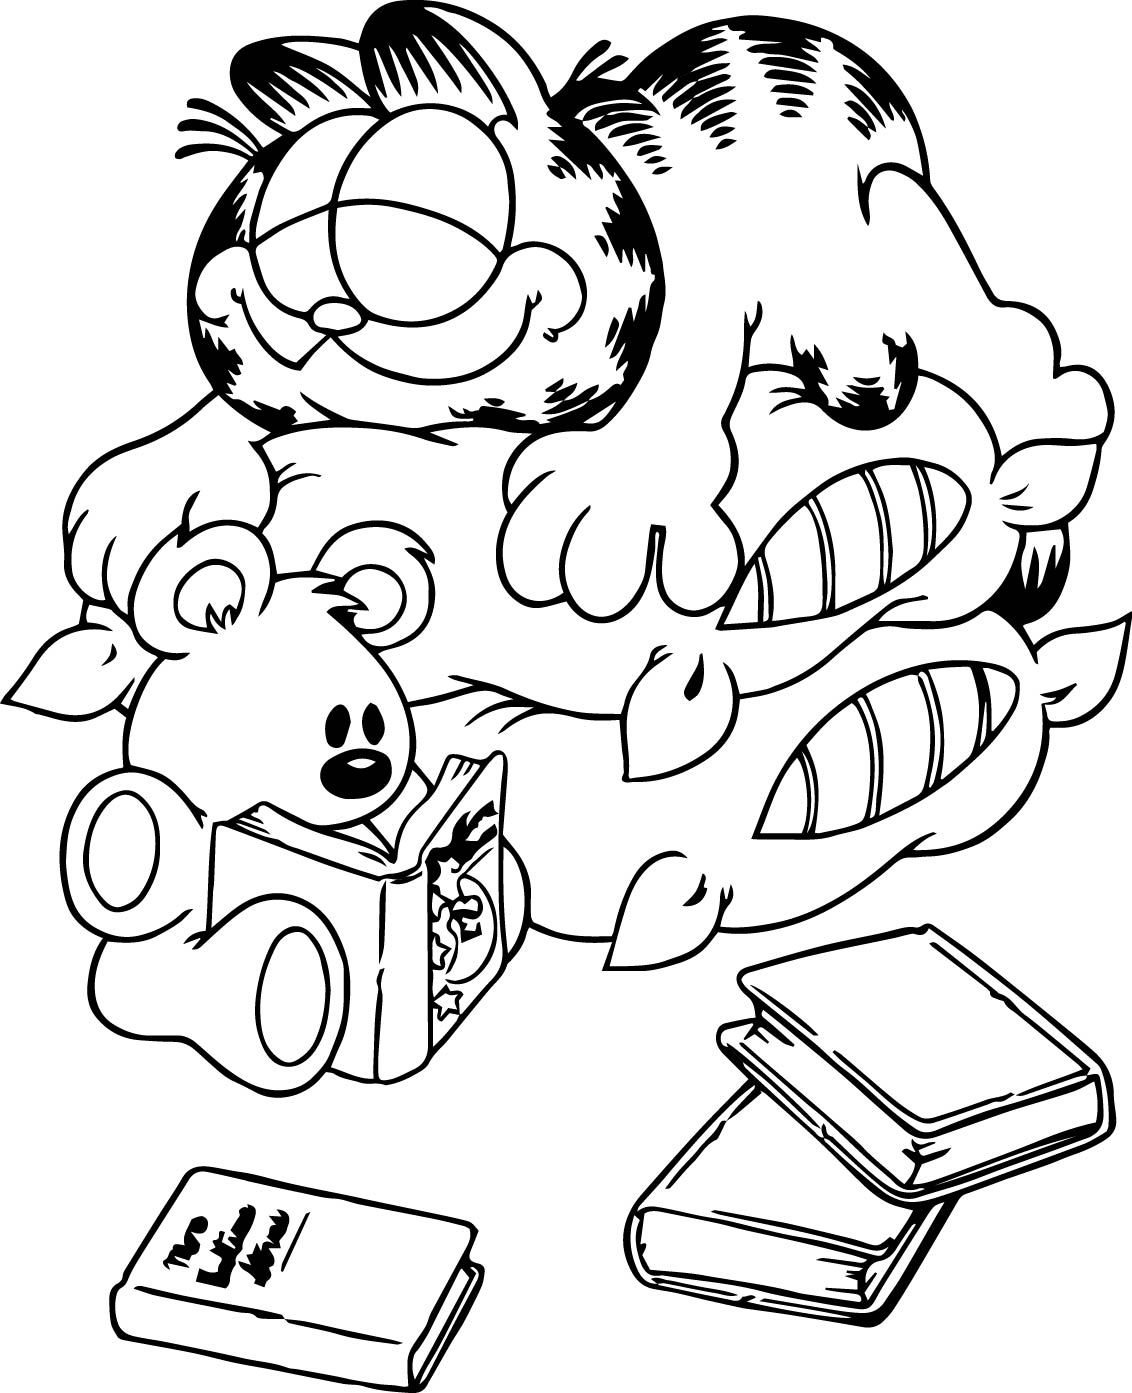 Garfield Coloring Pages | Coloring Garfield | Pictures of Garfield ...